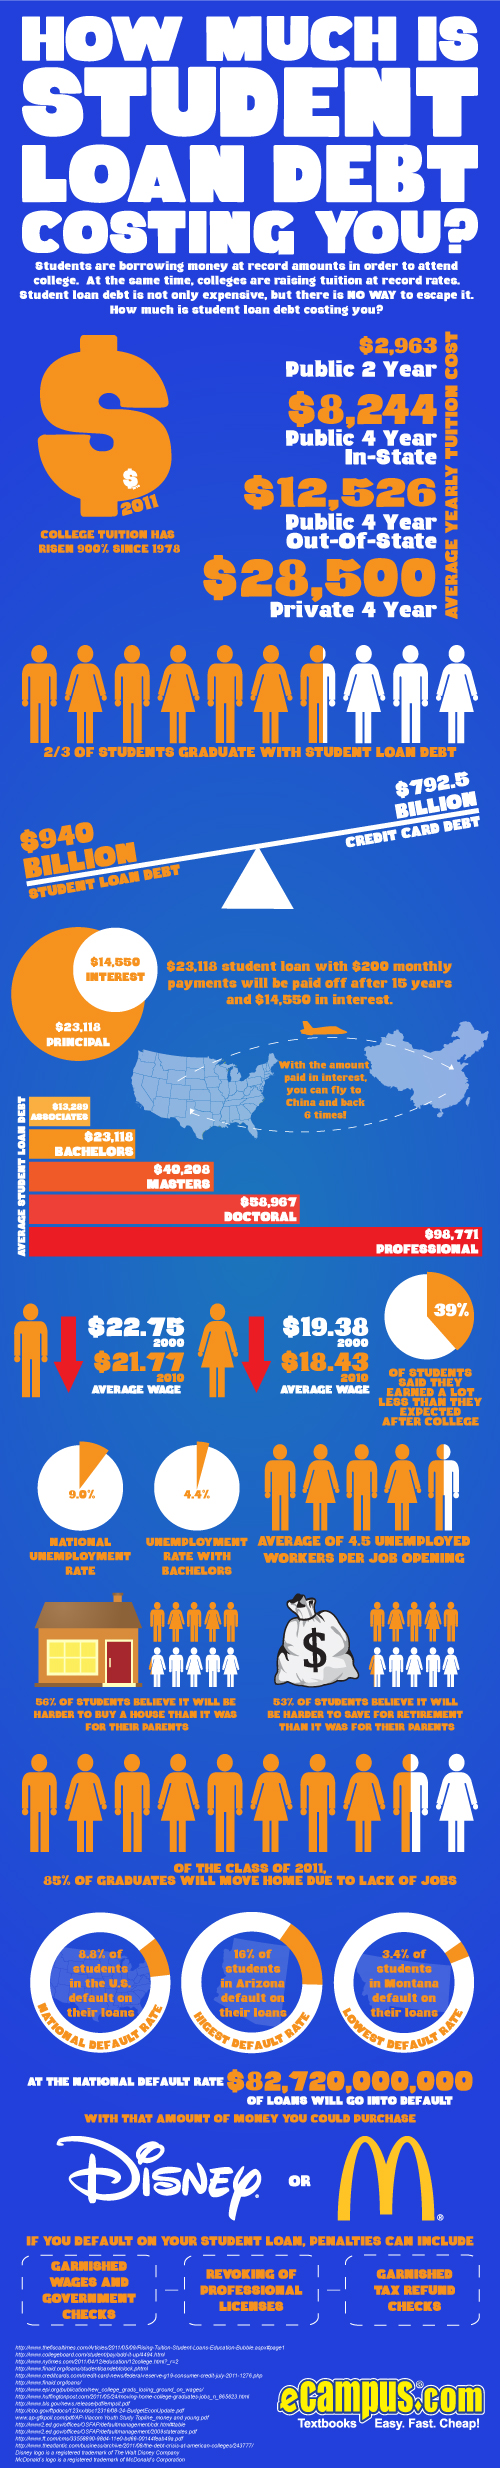 How Much Is The Average Student Loan Debt